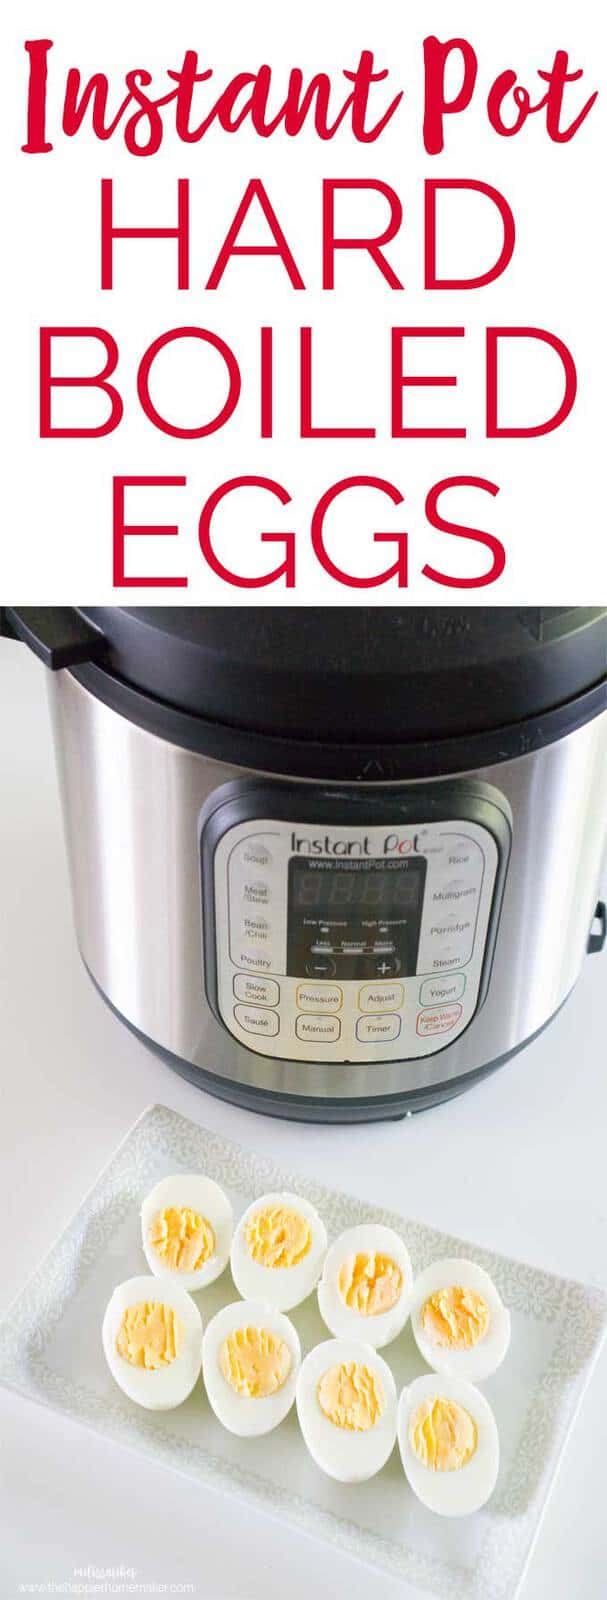 How to easily hard boil eggs in an instant pot-fast and fail proof!